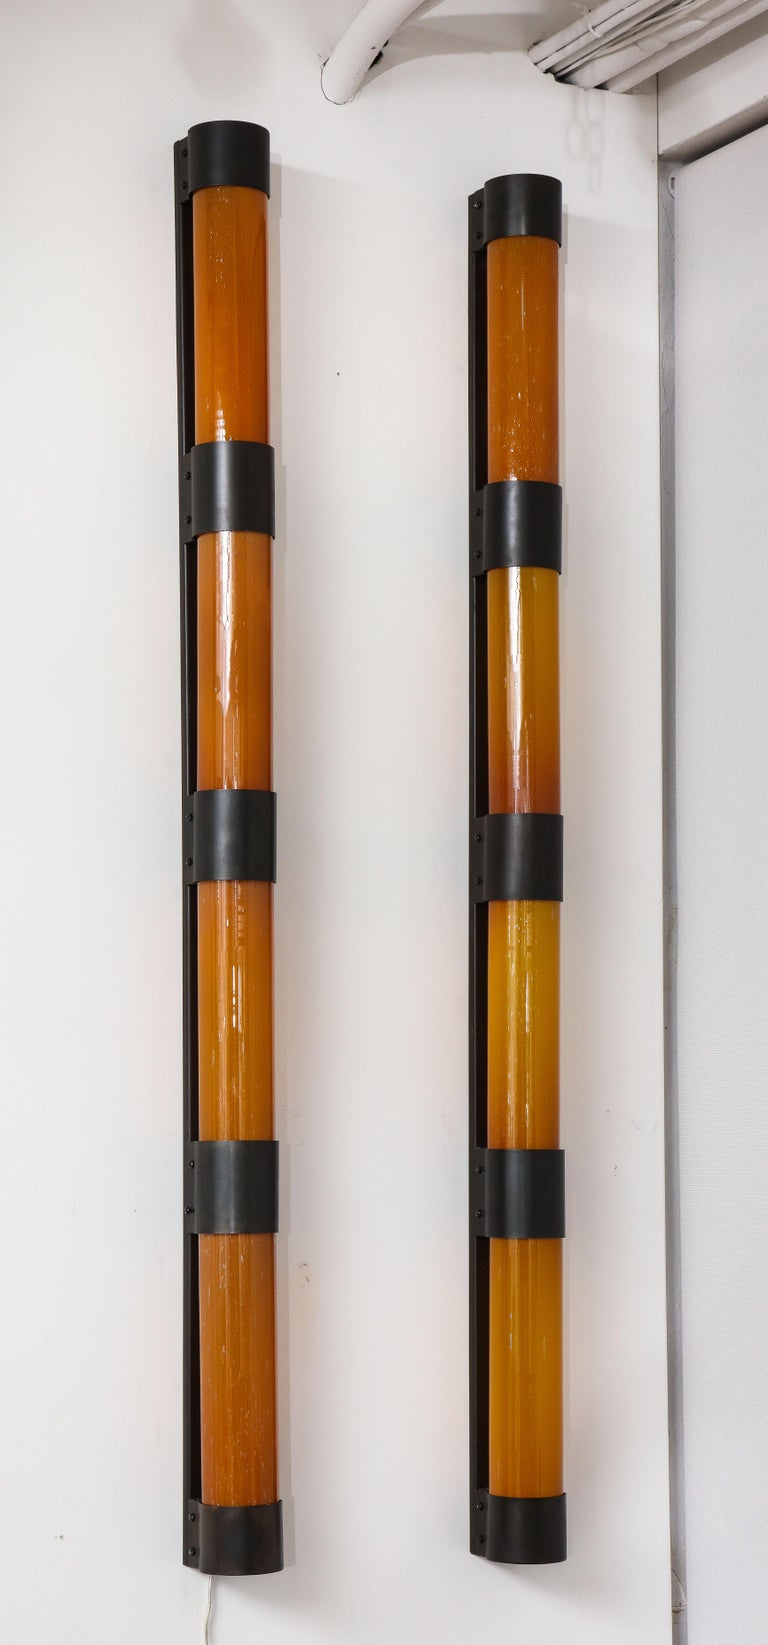 Modern Pair of Large Amber Glass Sconces by Savoy Studios, '4 Pairs Available' For Sale